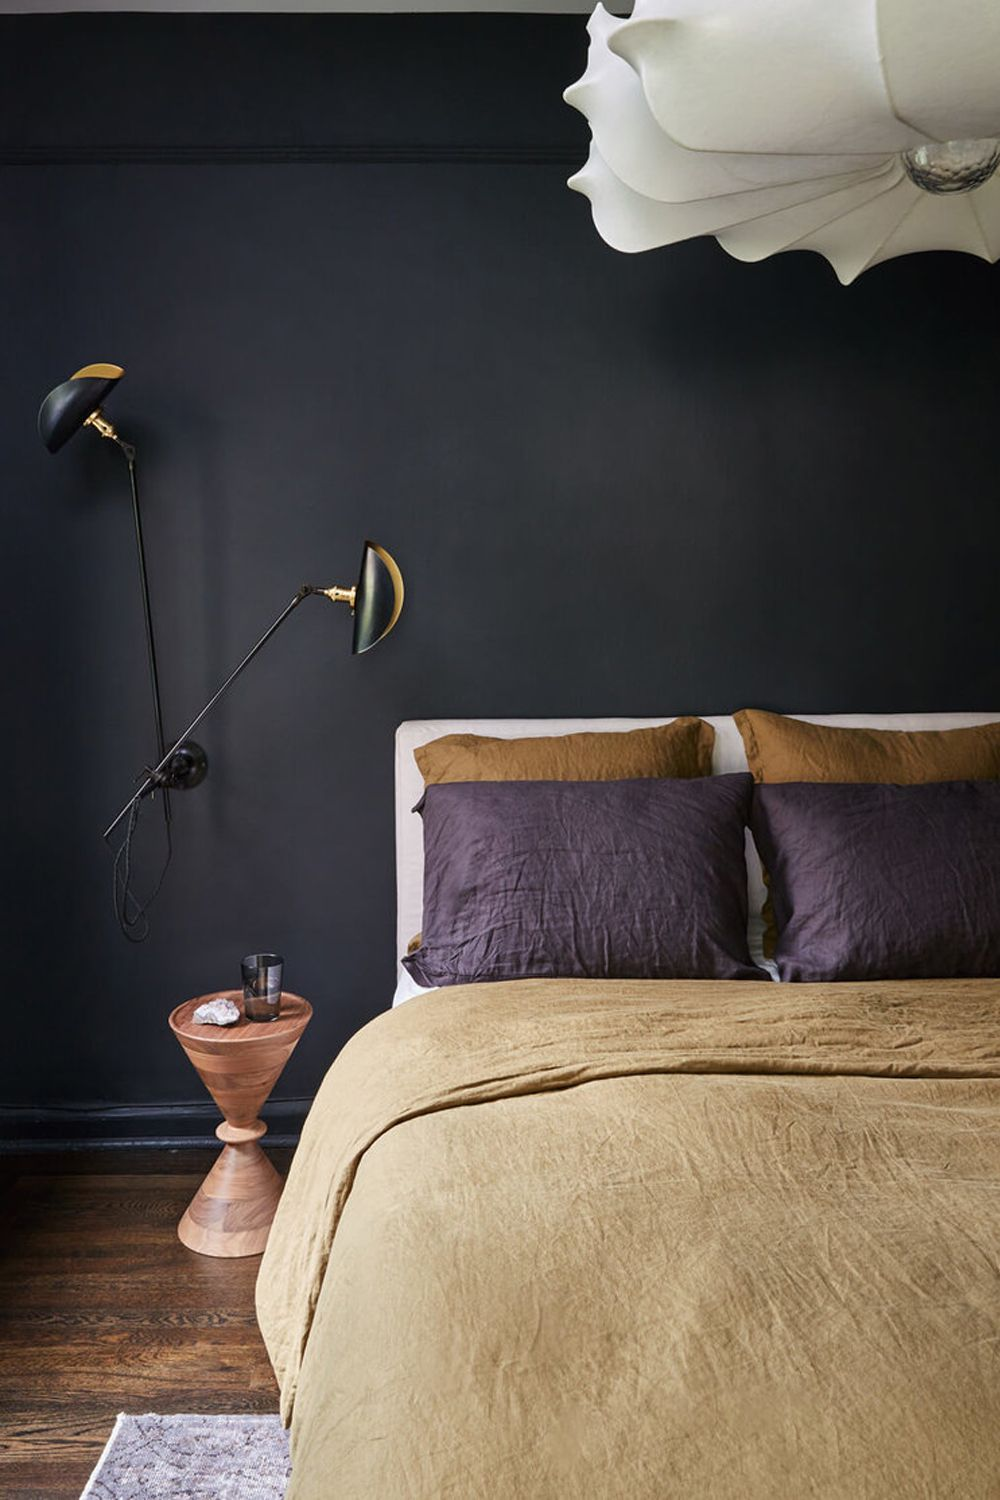 Designed by Tali Roth Interior Design, this black bedroom features light textiles and decorative lighting to inject brightness into the space Photography: Seth Caplan, courtesy of Tali Roth Interior Design